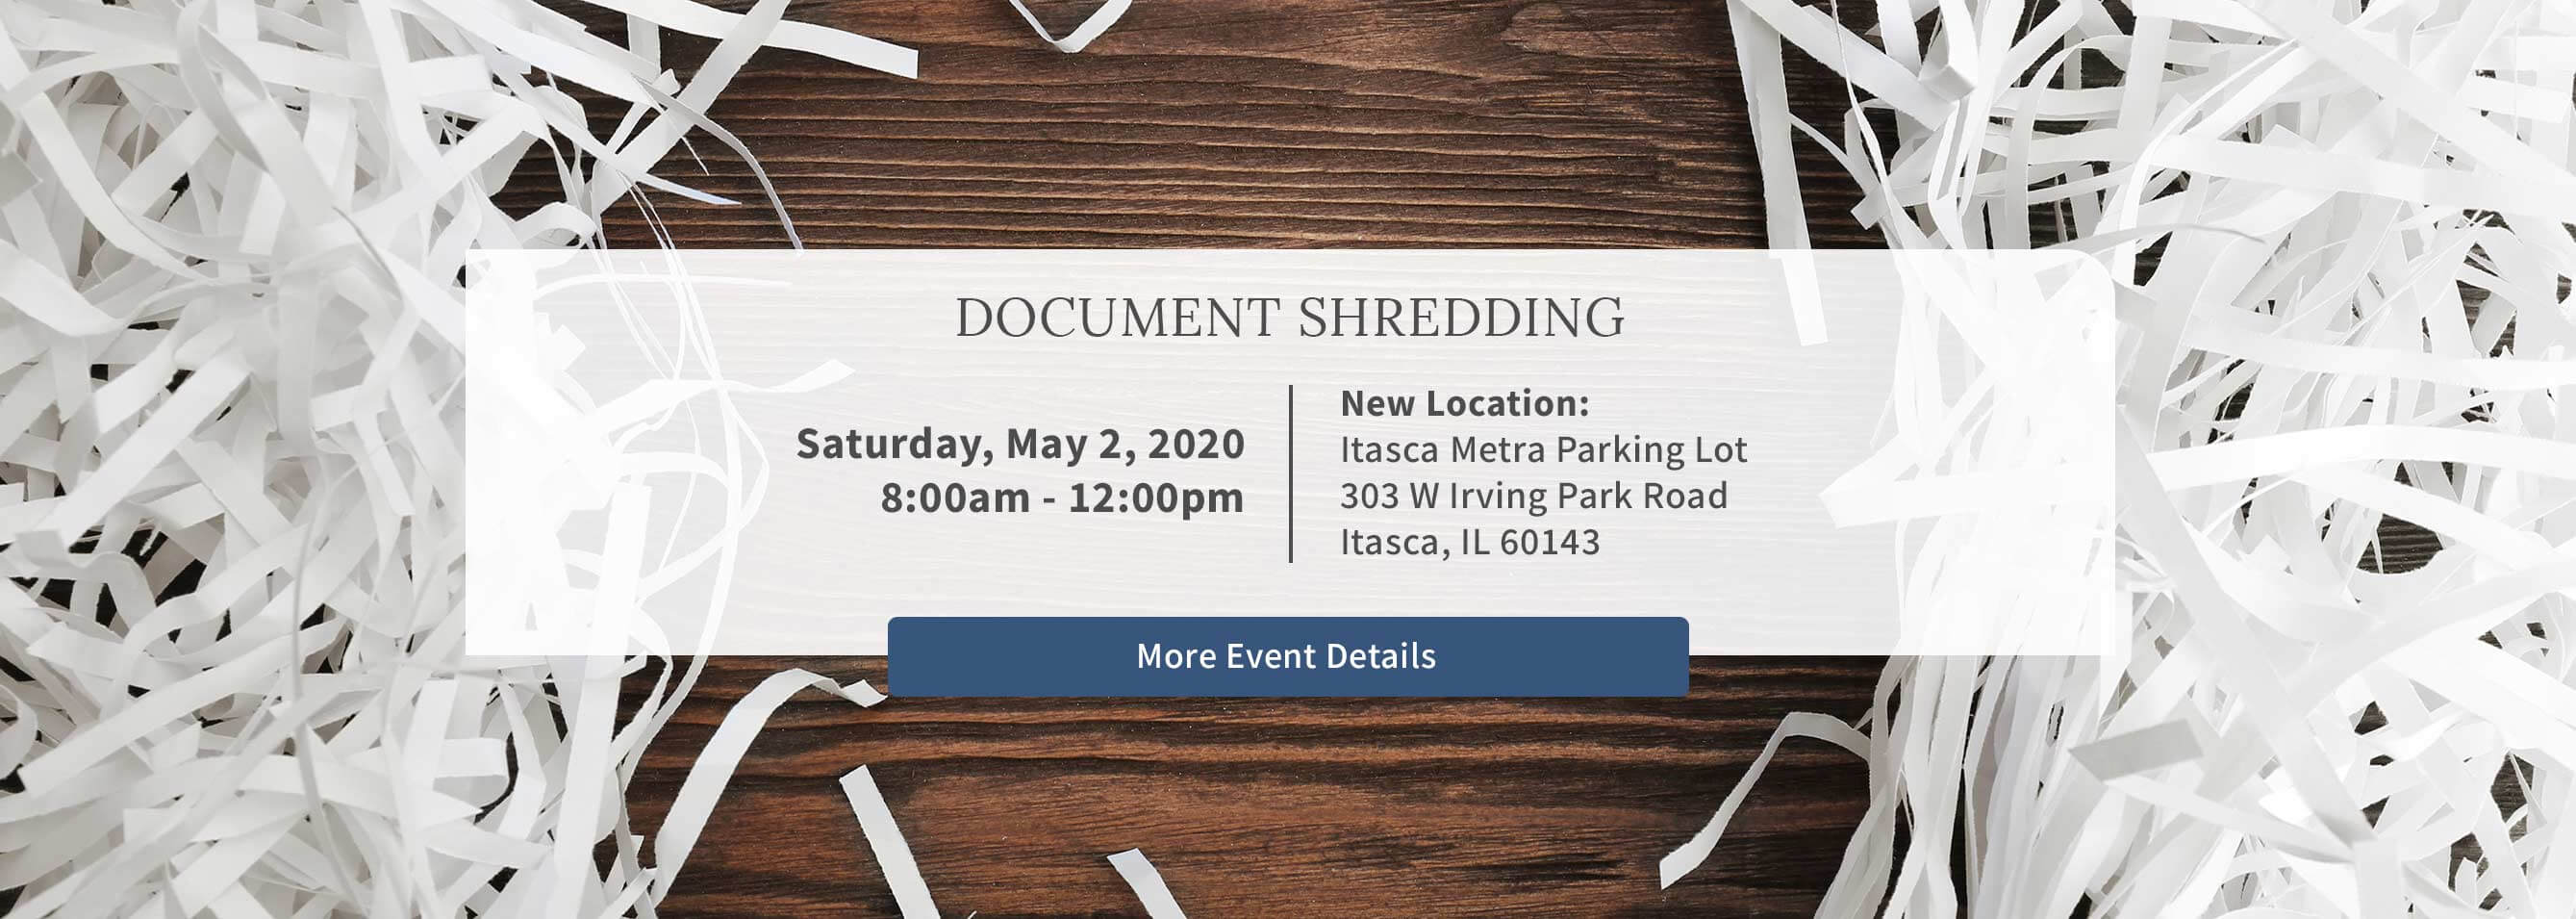 Document Shredding. Saturday, May 2, 2020. 8:00am - 12:00pm. New location: Itasca Metra Parking Lot, 303 W. Irving Park Road, Itasca, IL 60143. More event details